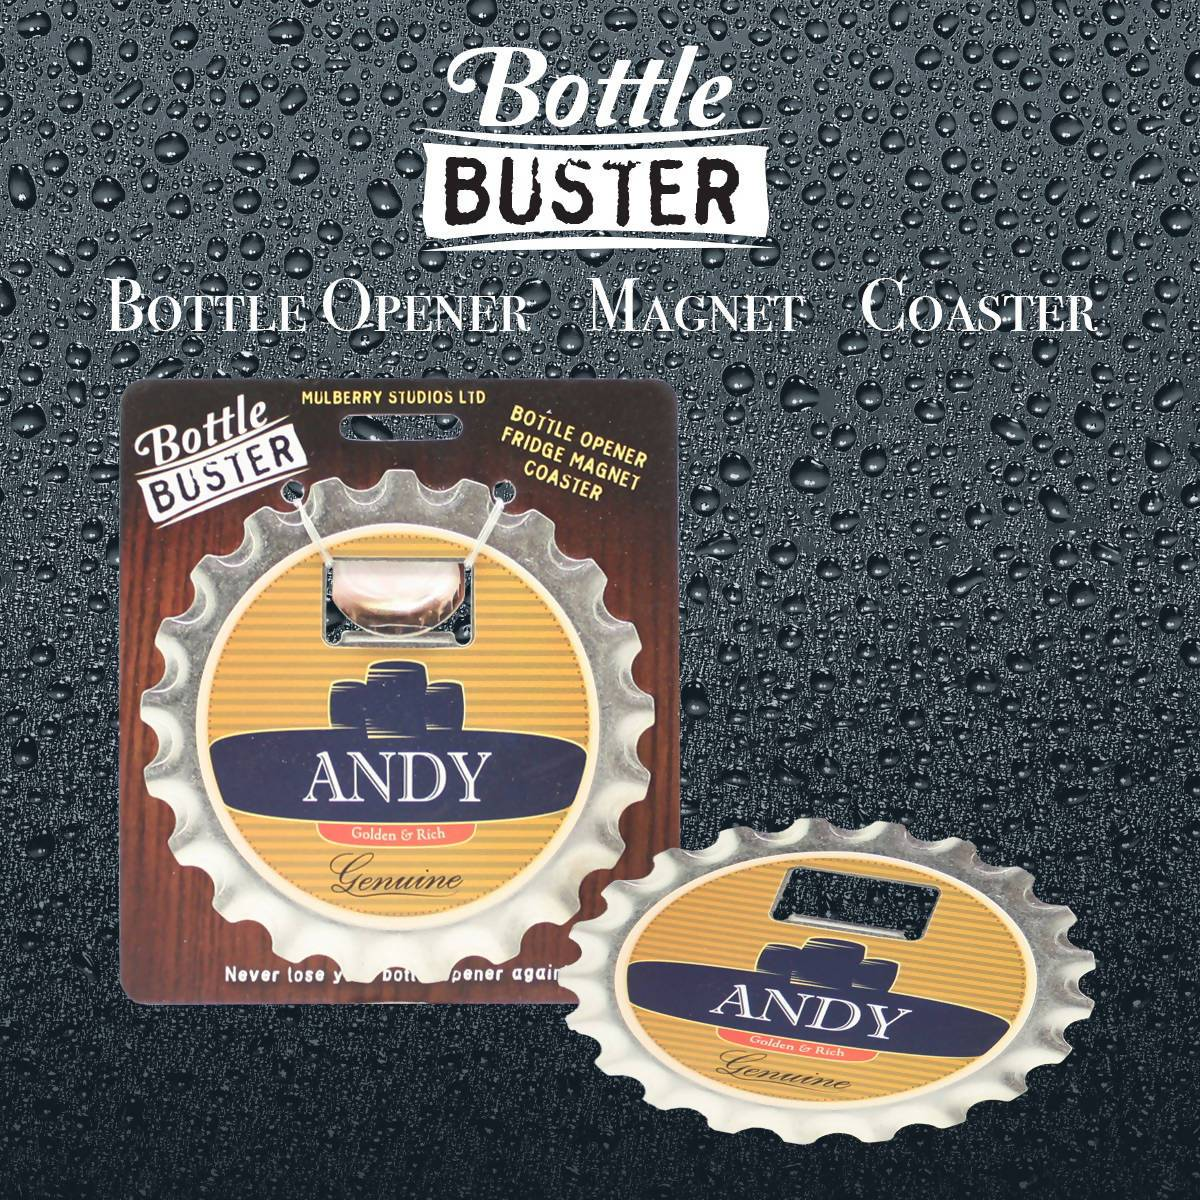 BOTTLE BUSTER - Best Bottle Opener : Andy - Bottle Openers - La Belle Collection - Naiise